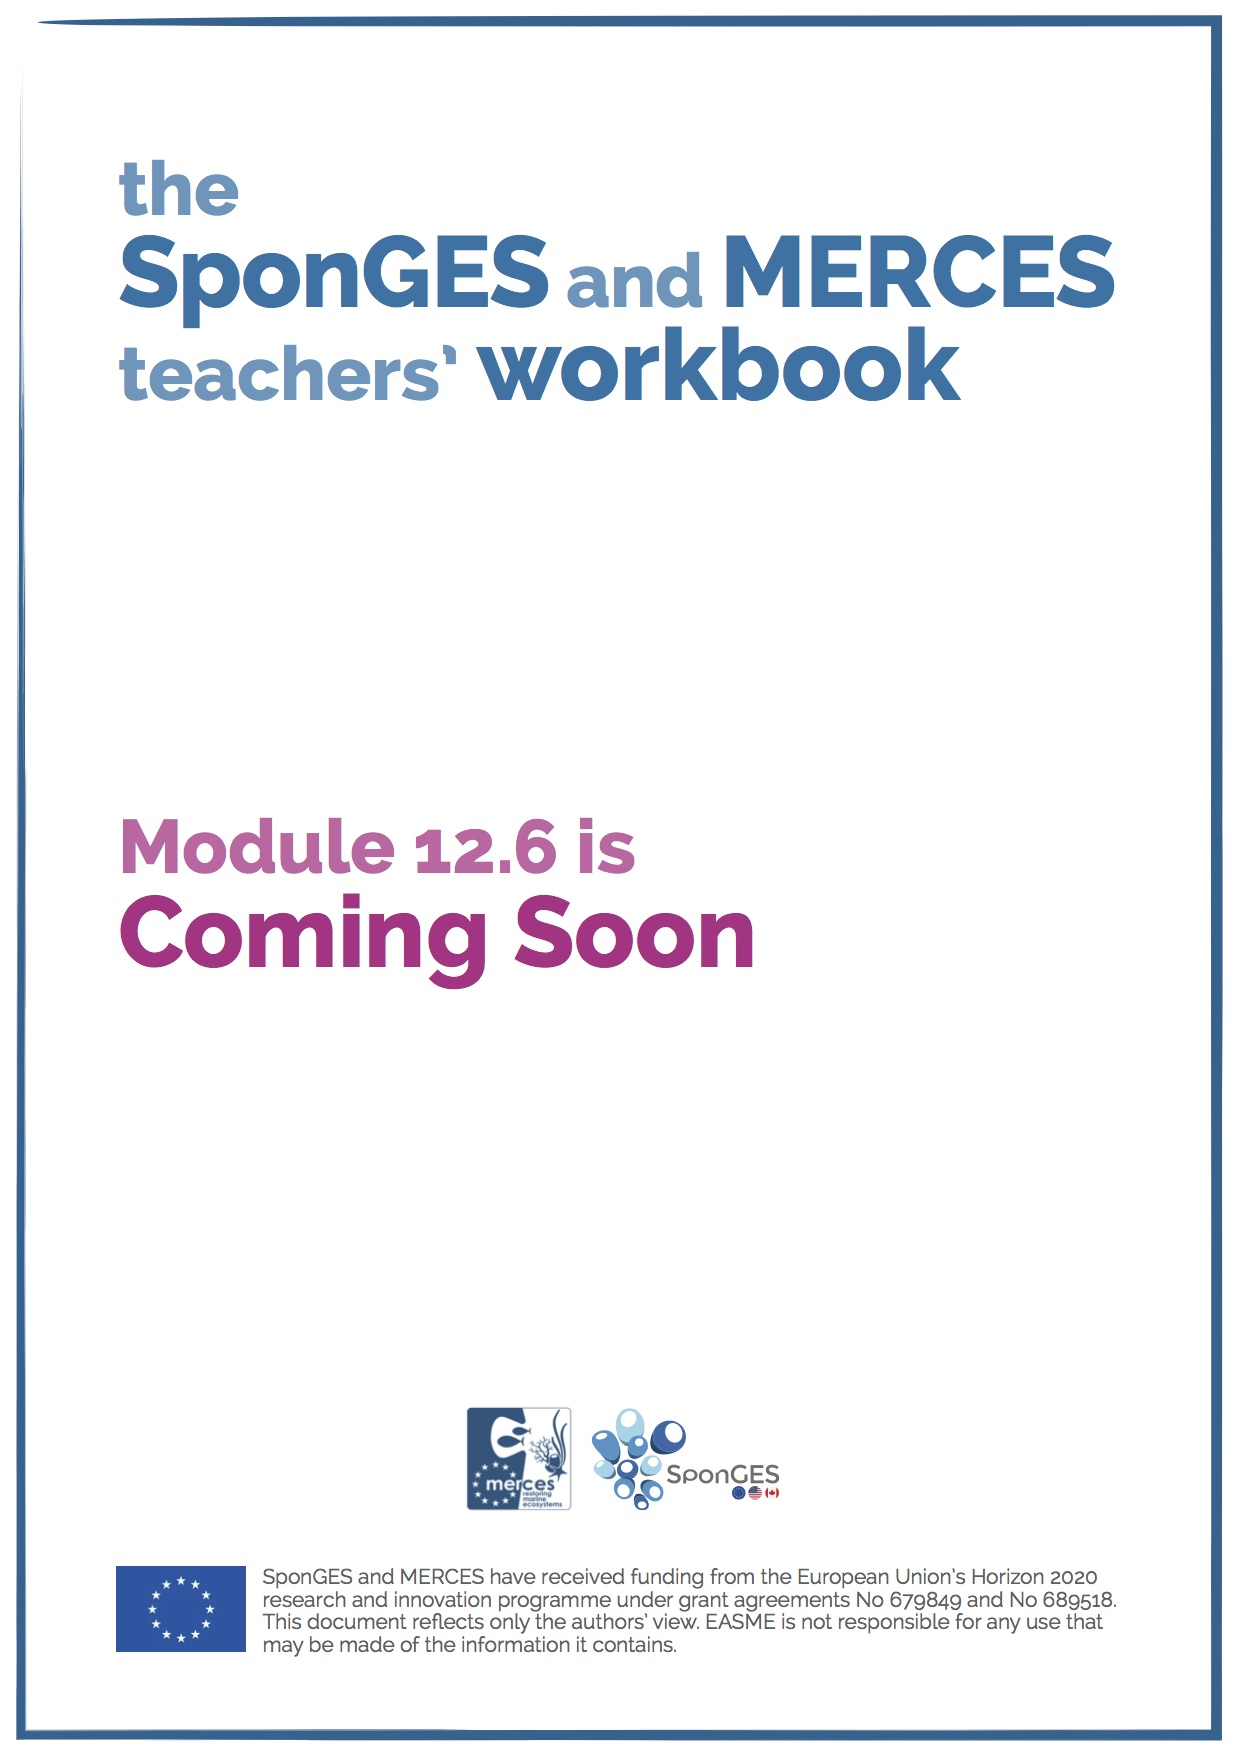 Module 12.6 of the SponGES and MERCES teachers' workbook